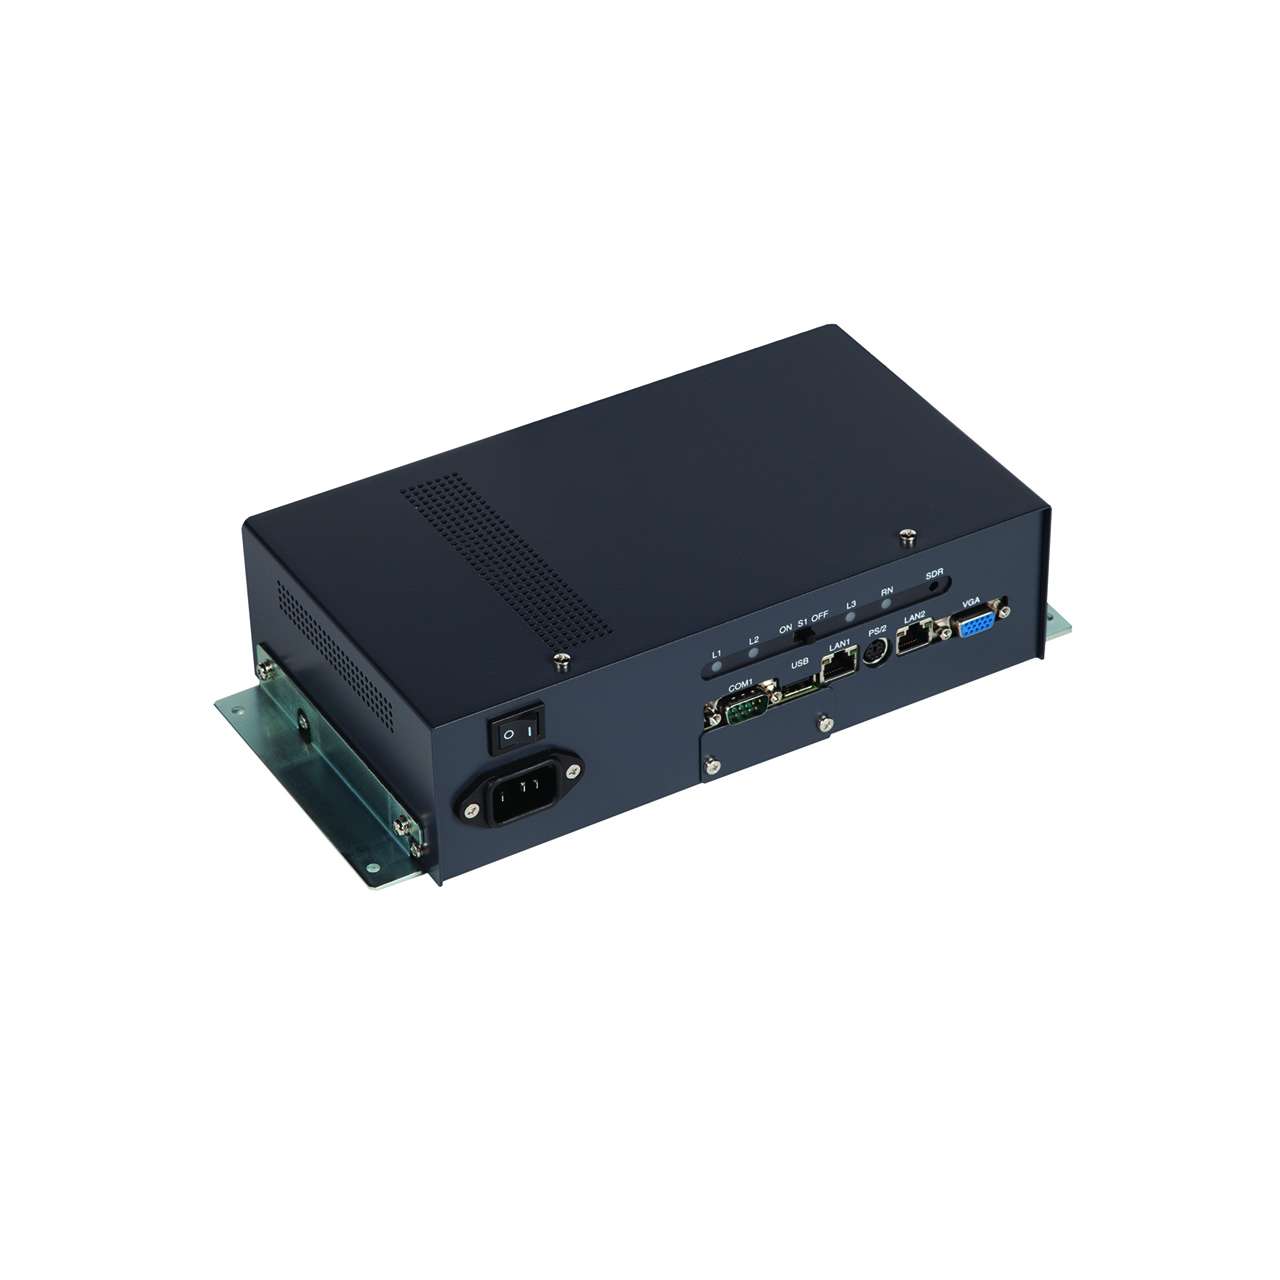 carrier-BMS-LSV6UL-vrf-BACnet-system-intelligent-server